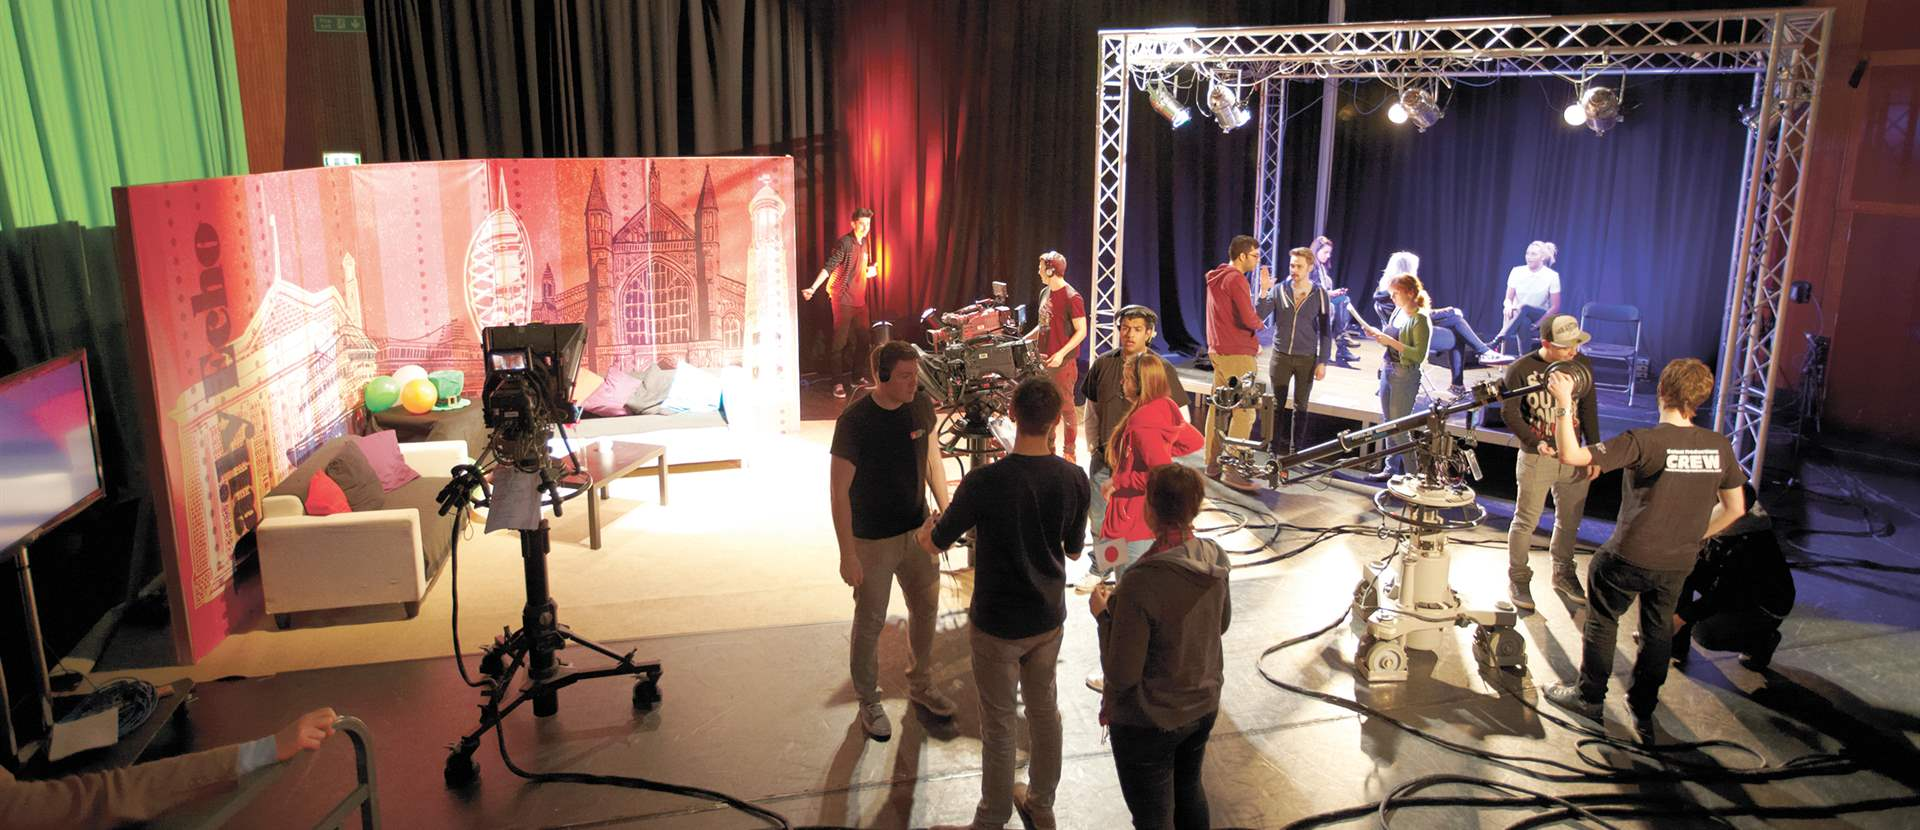 BA (Hons) Television Production